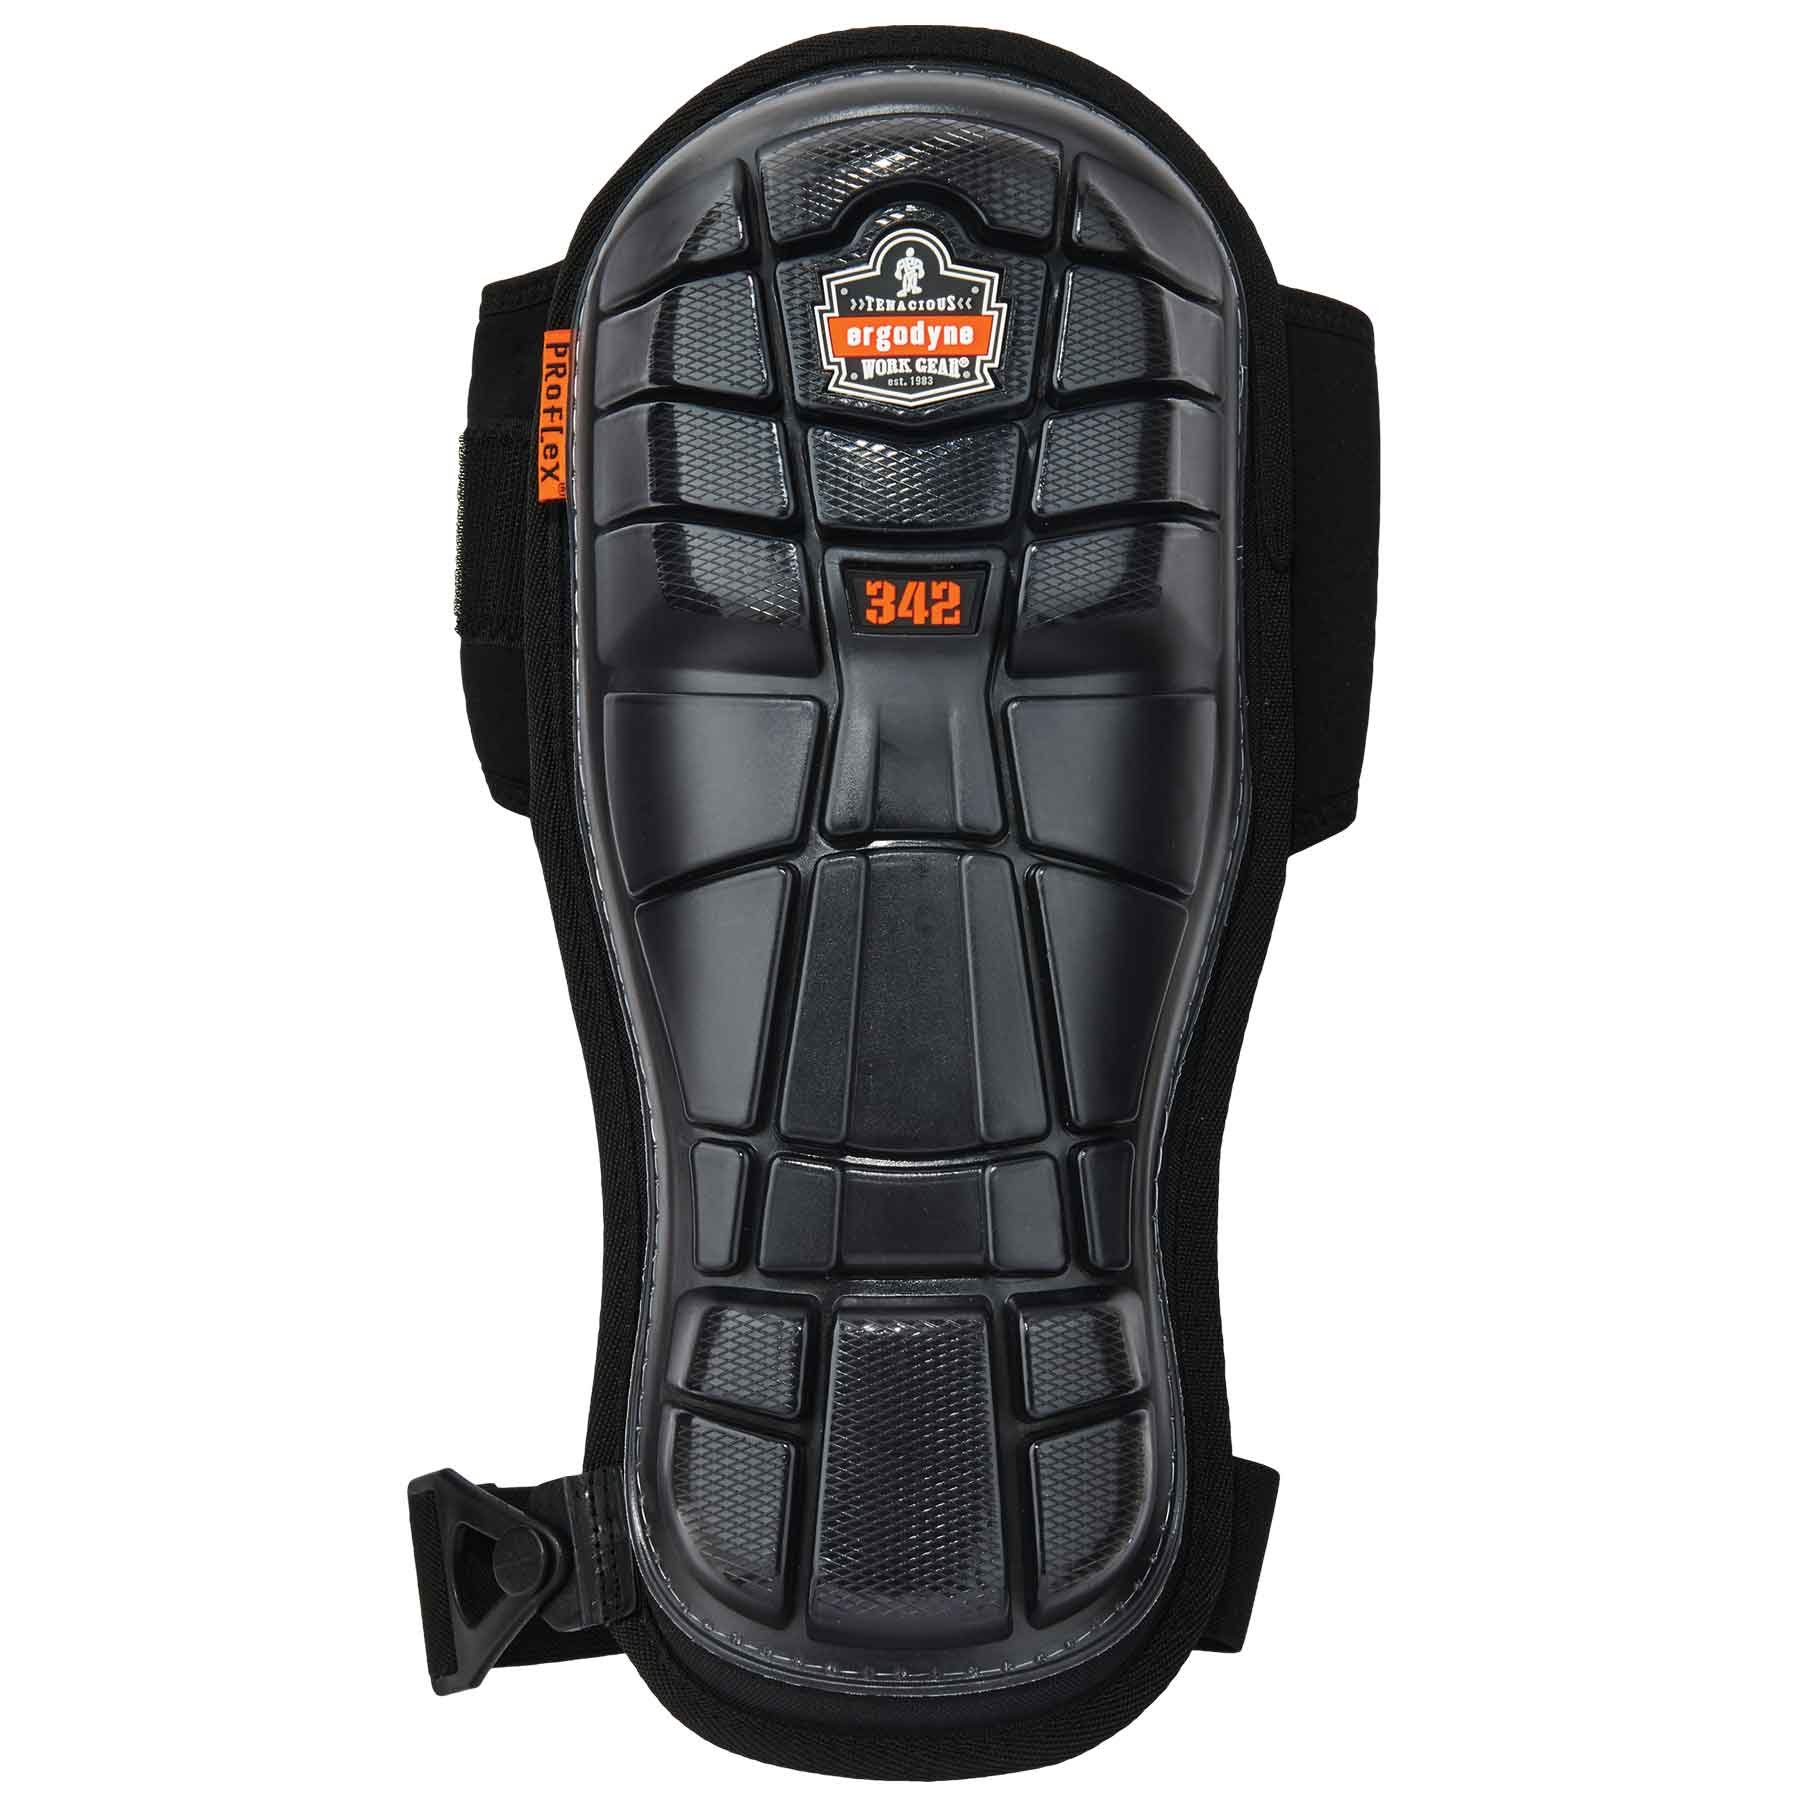 Ergodyne ProFlex 342 Professional Knee Pads, Protective Extra Long Cap, Injected Gel Padded Technology, Adjustable Straps, Black